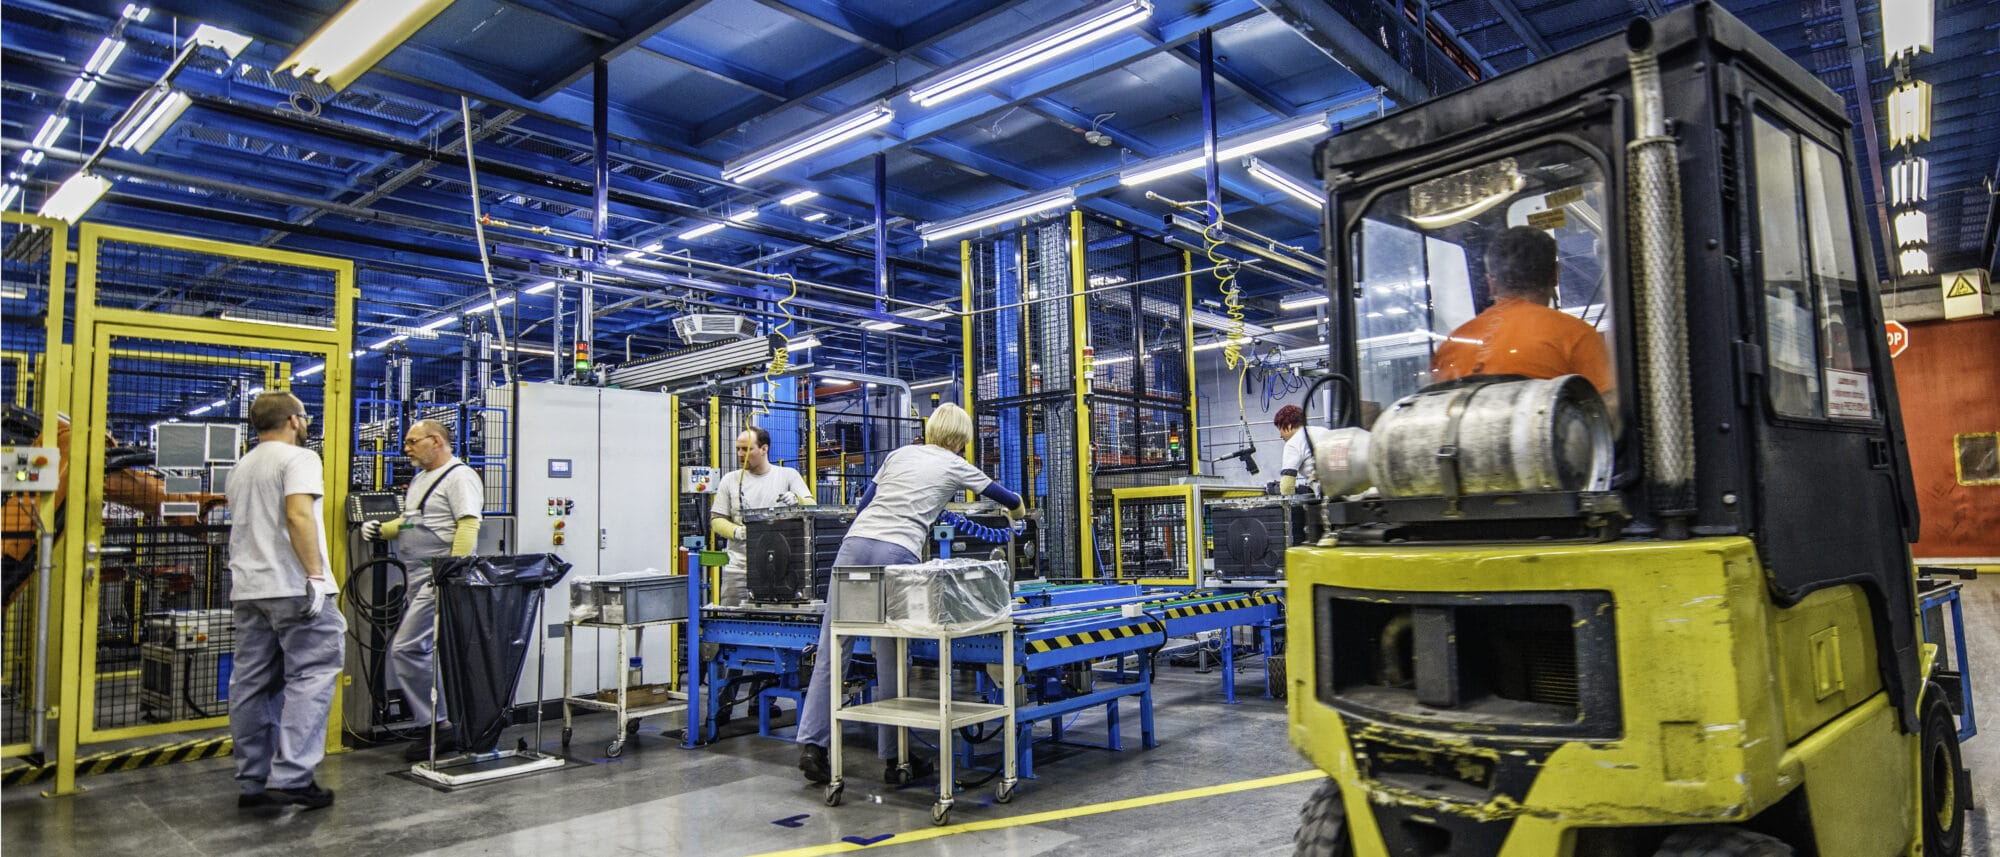 Maintenance in the non-food industry